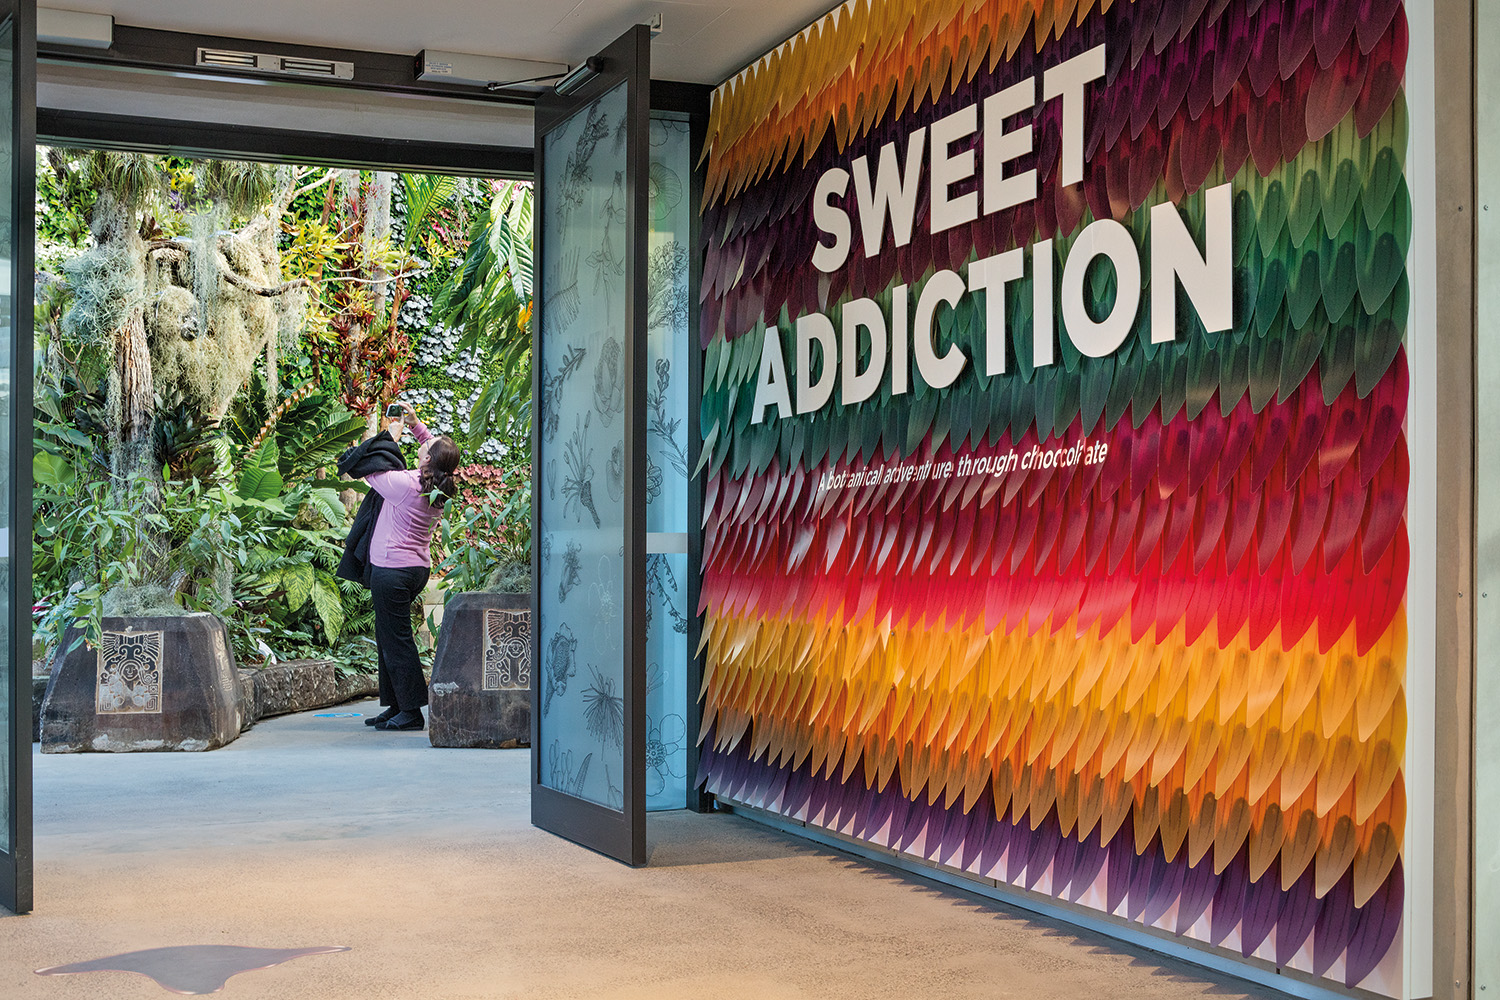 A unique horticultural exhibit, Sweet Addiction told the story of chocolate: its origins, production methods and extraordinary popularity across the globe.